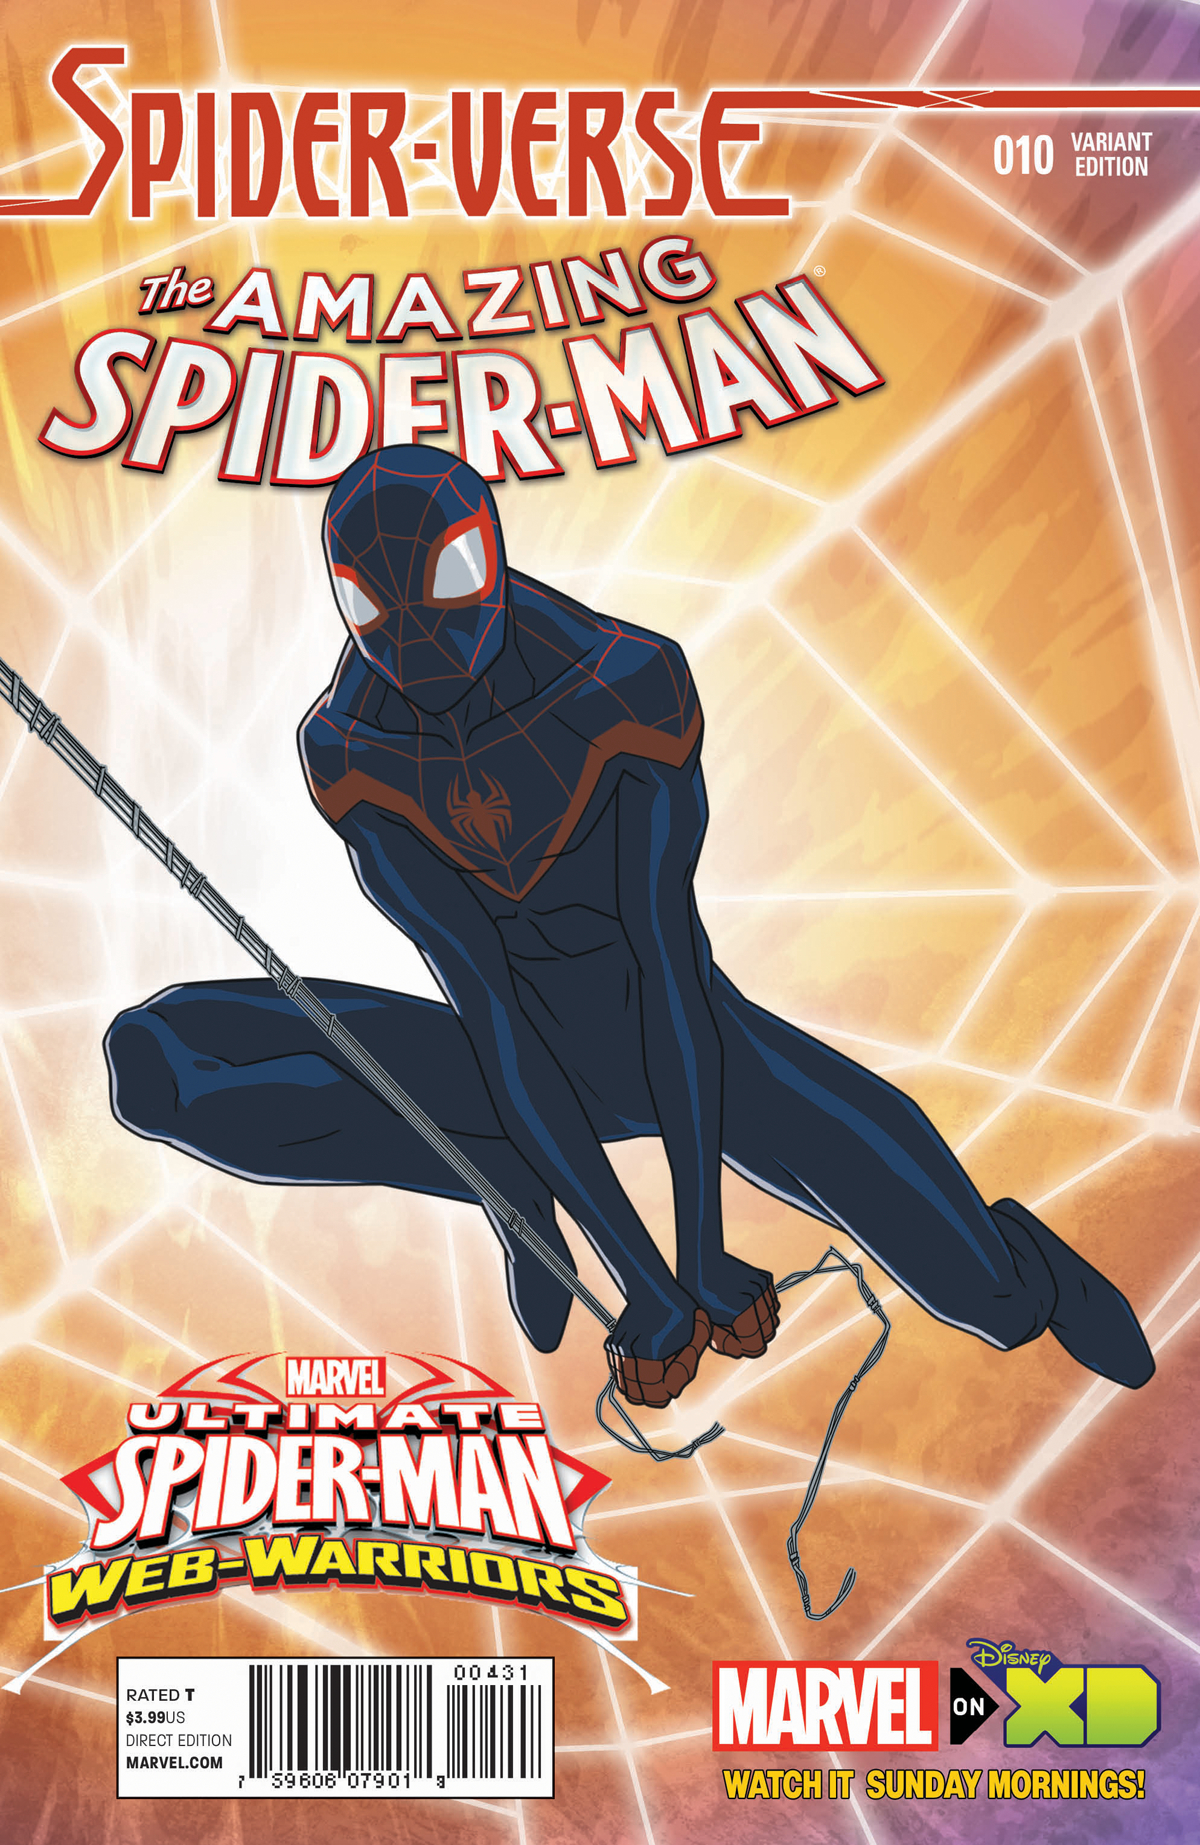 AMAZING SPIDER-MAN #10 MARVEL ANIMATION SPIDER-VERSE VAR SV